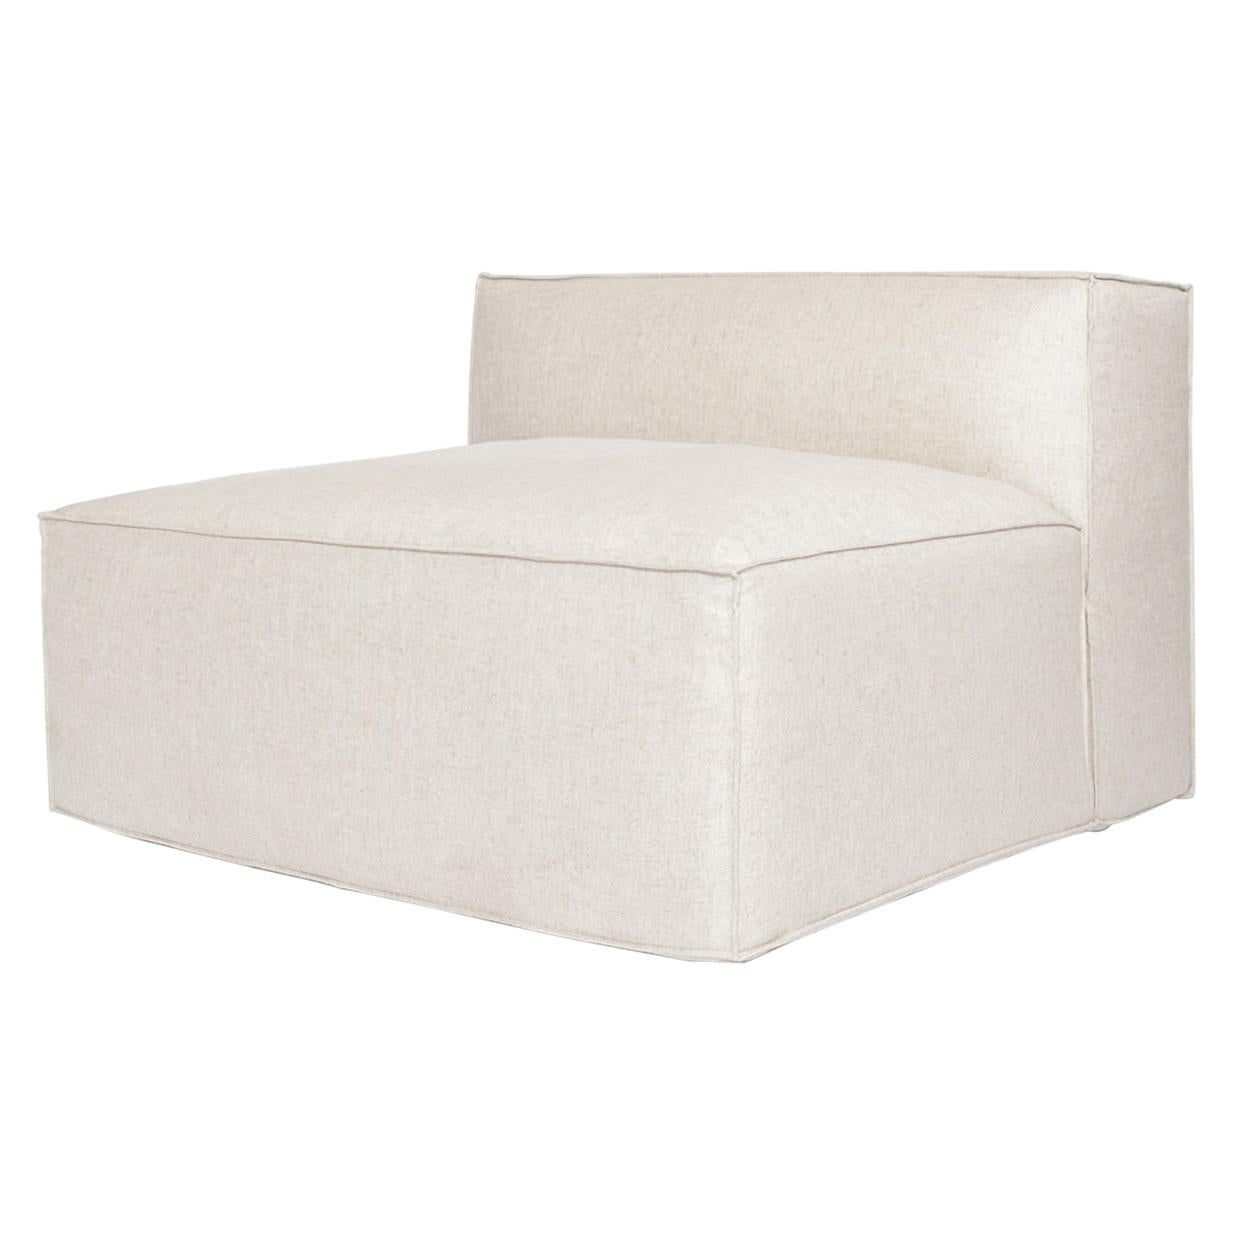 Arena module with backrest for Sofa in linen color fabric upholstery